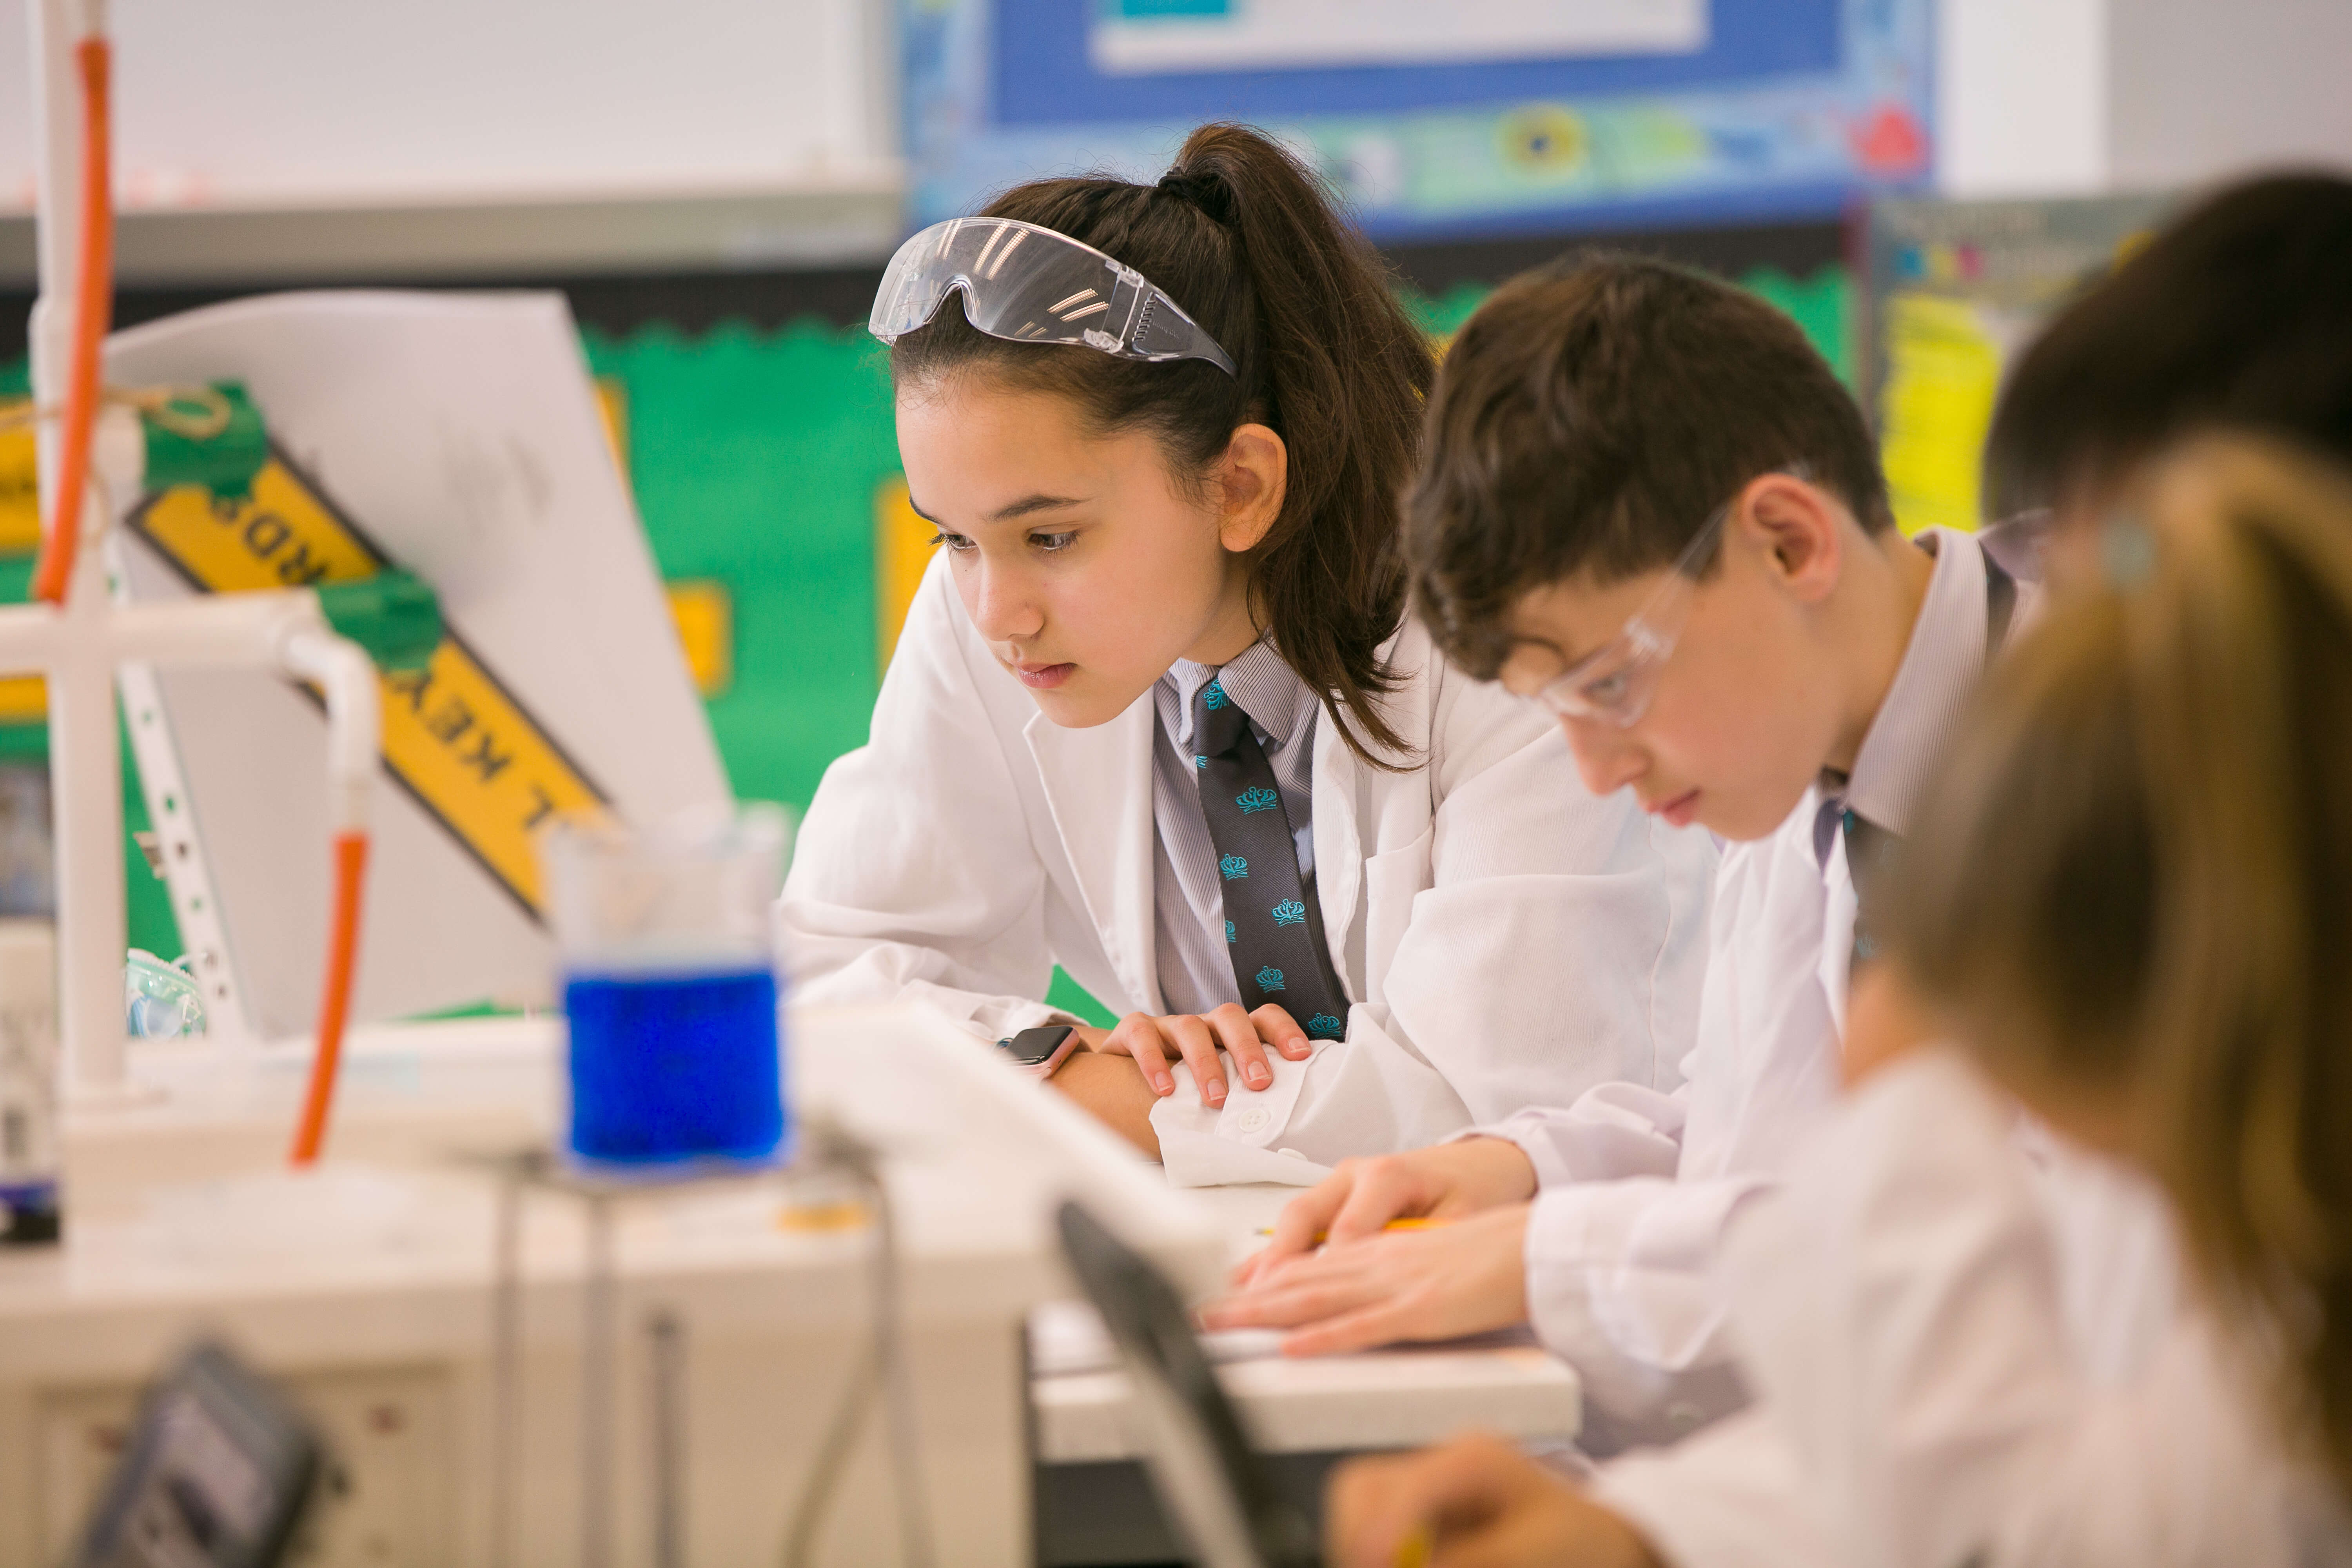 Hong Kong: A fun, creative and safe academic experience for young learners